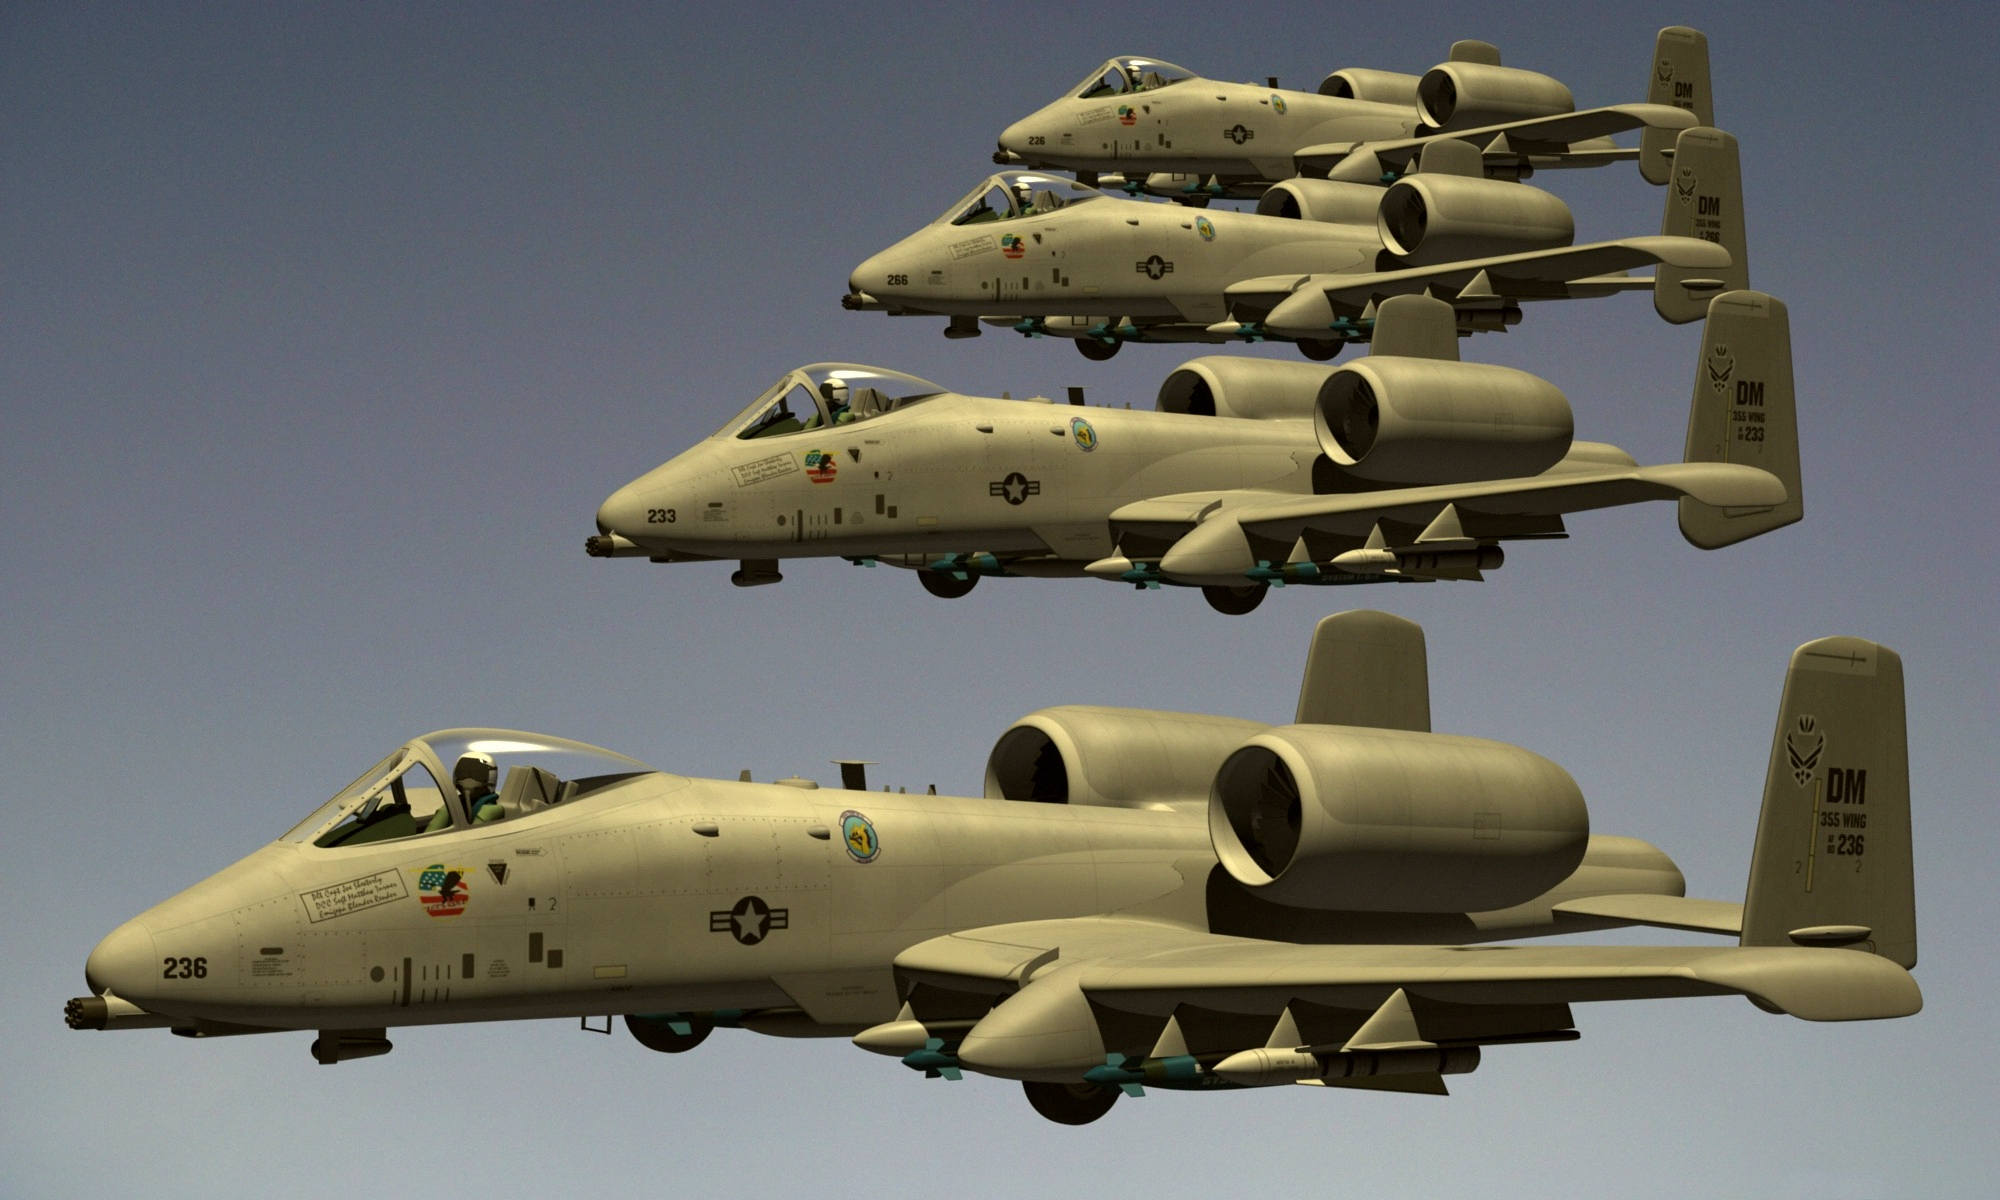 HD] A-10 Thunderbolt II Compilation - YouTube